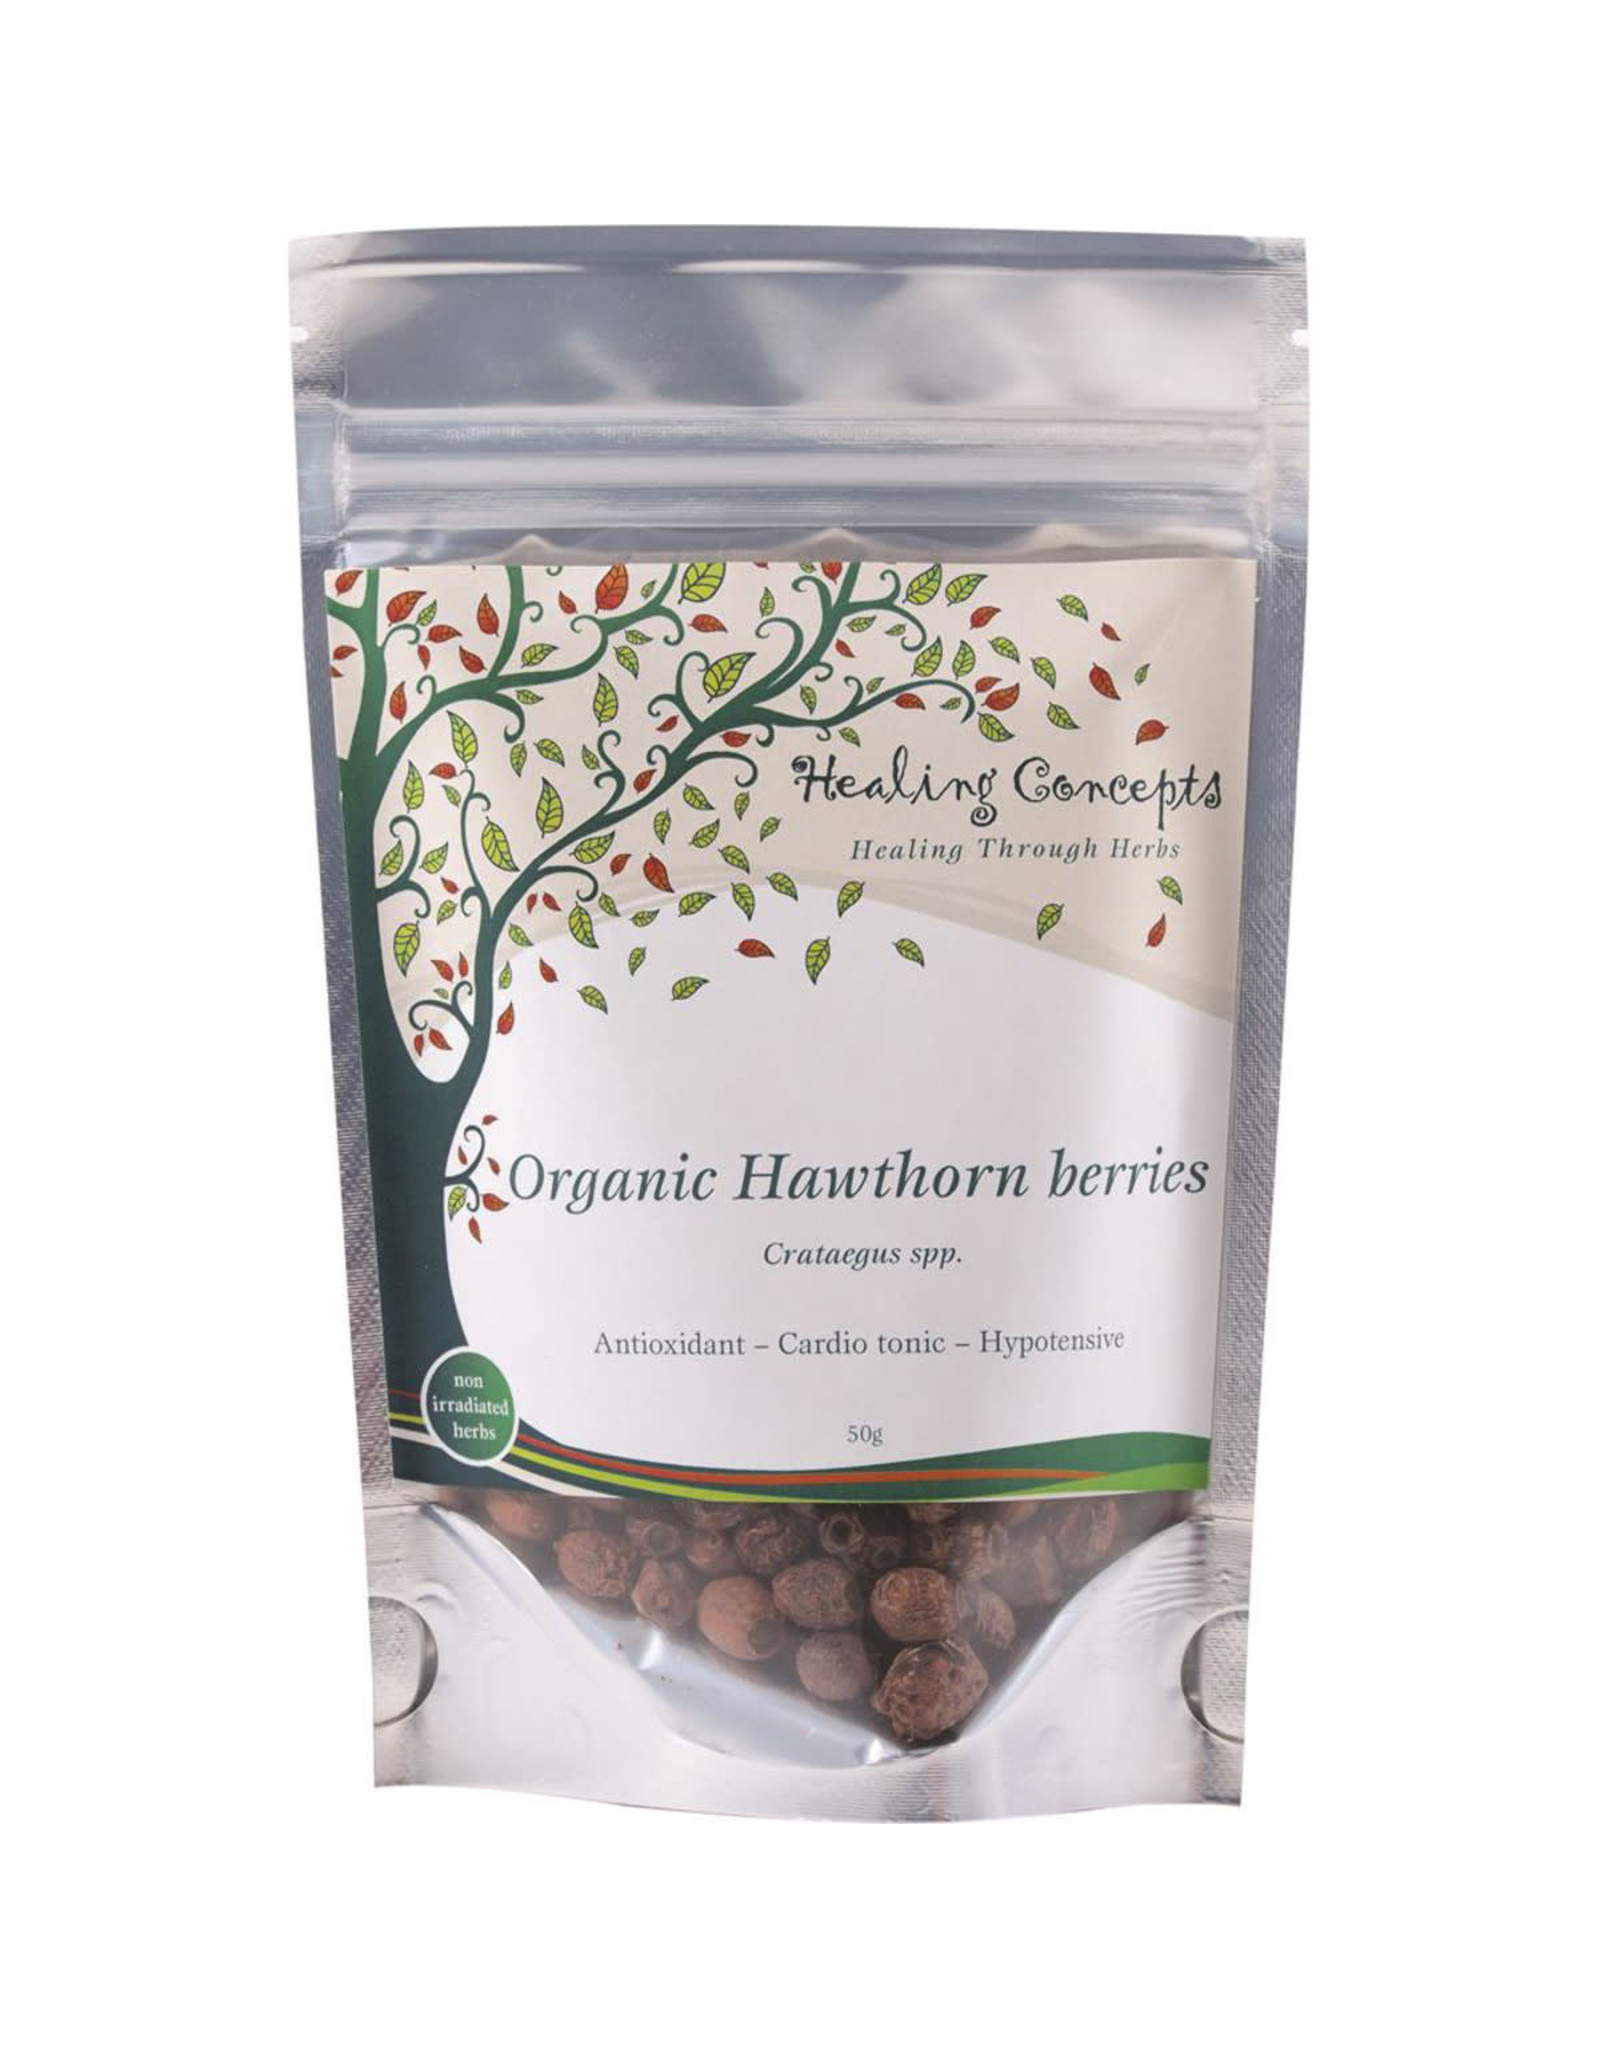 Healing Concepts Organic Hawthorn Berries Tea